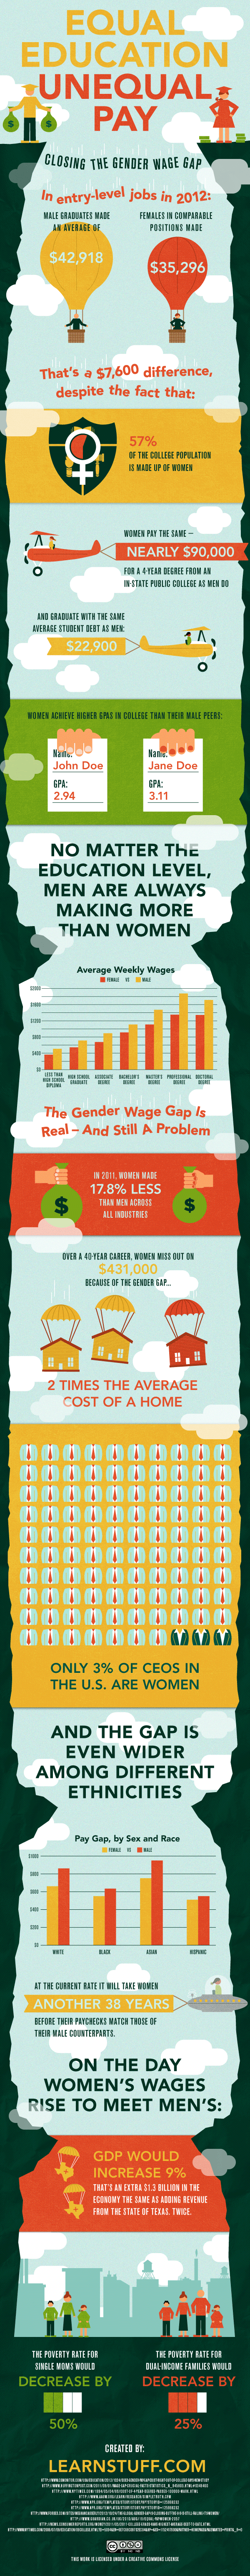 Equal Education, Unequal Pay infographic